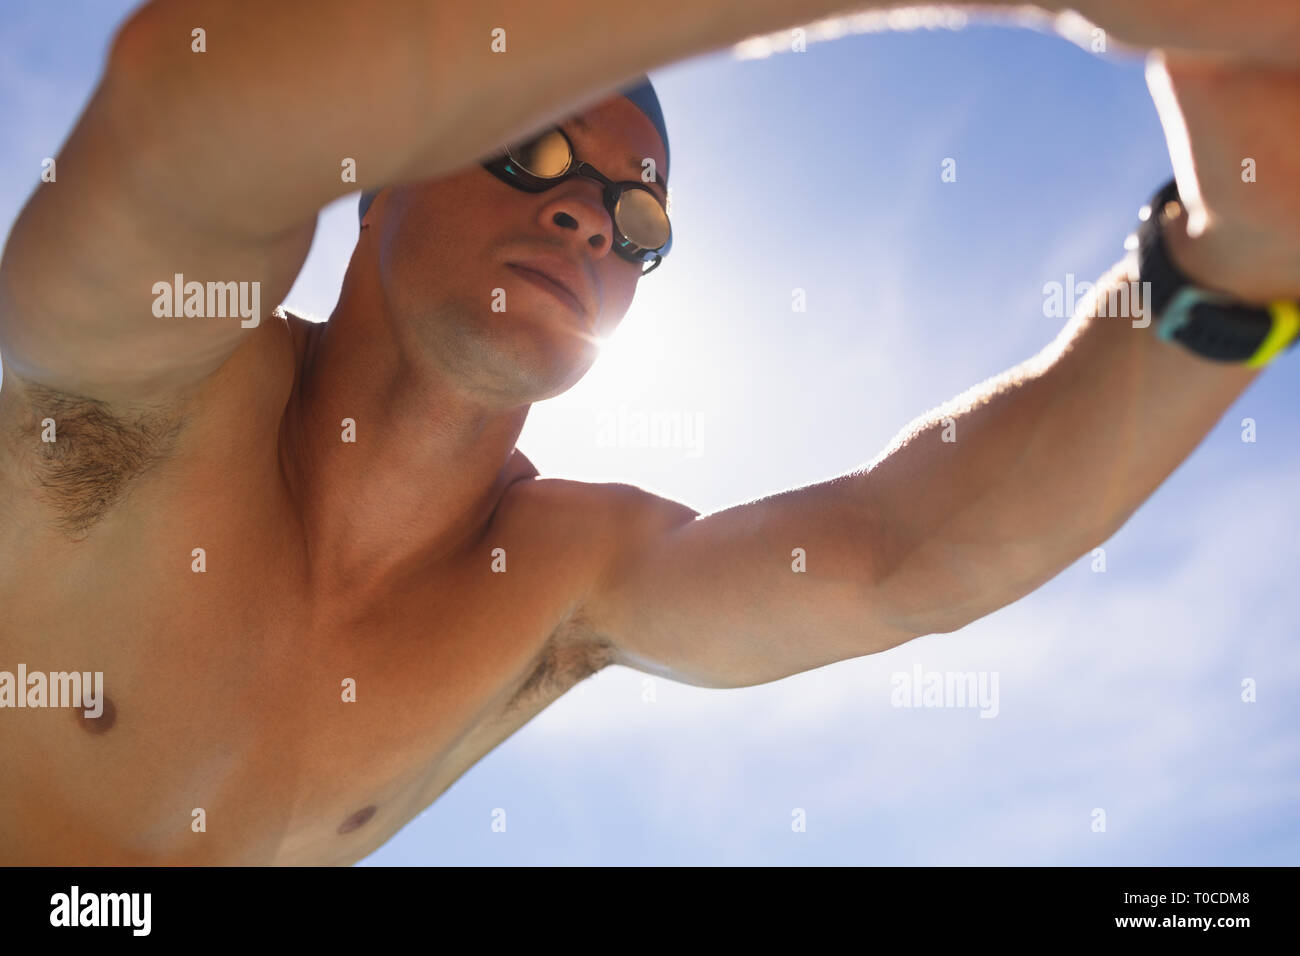 Male swimmer in starting position at swimming pool Stock Photo